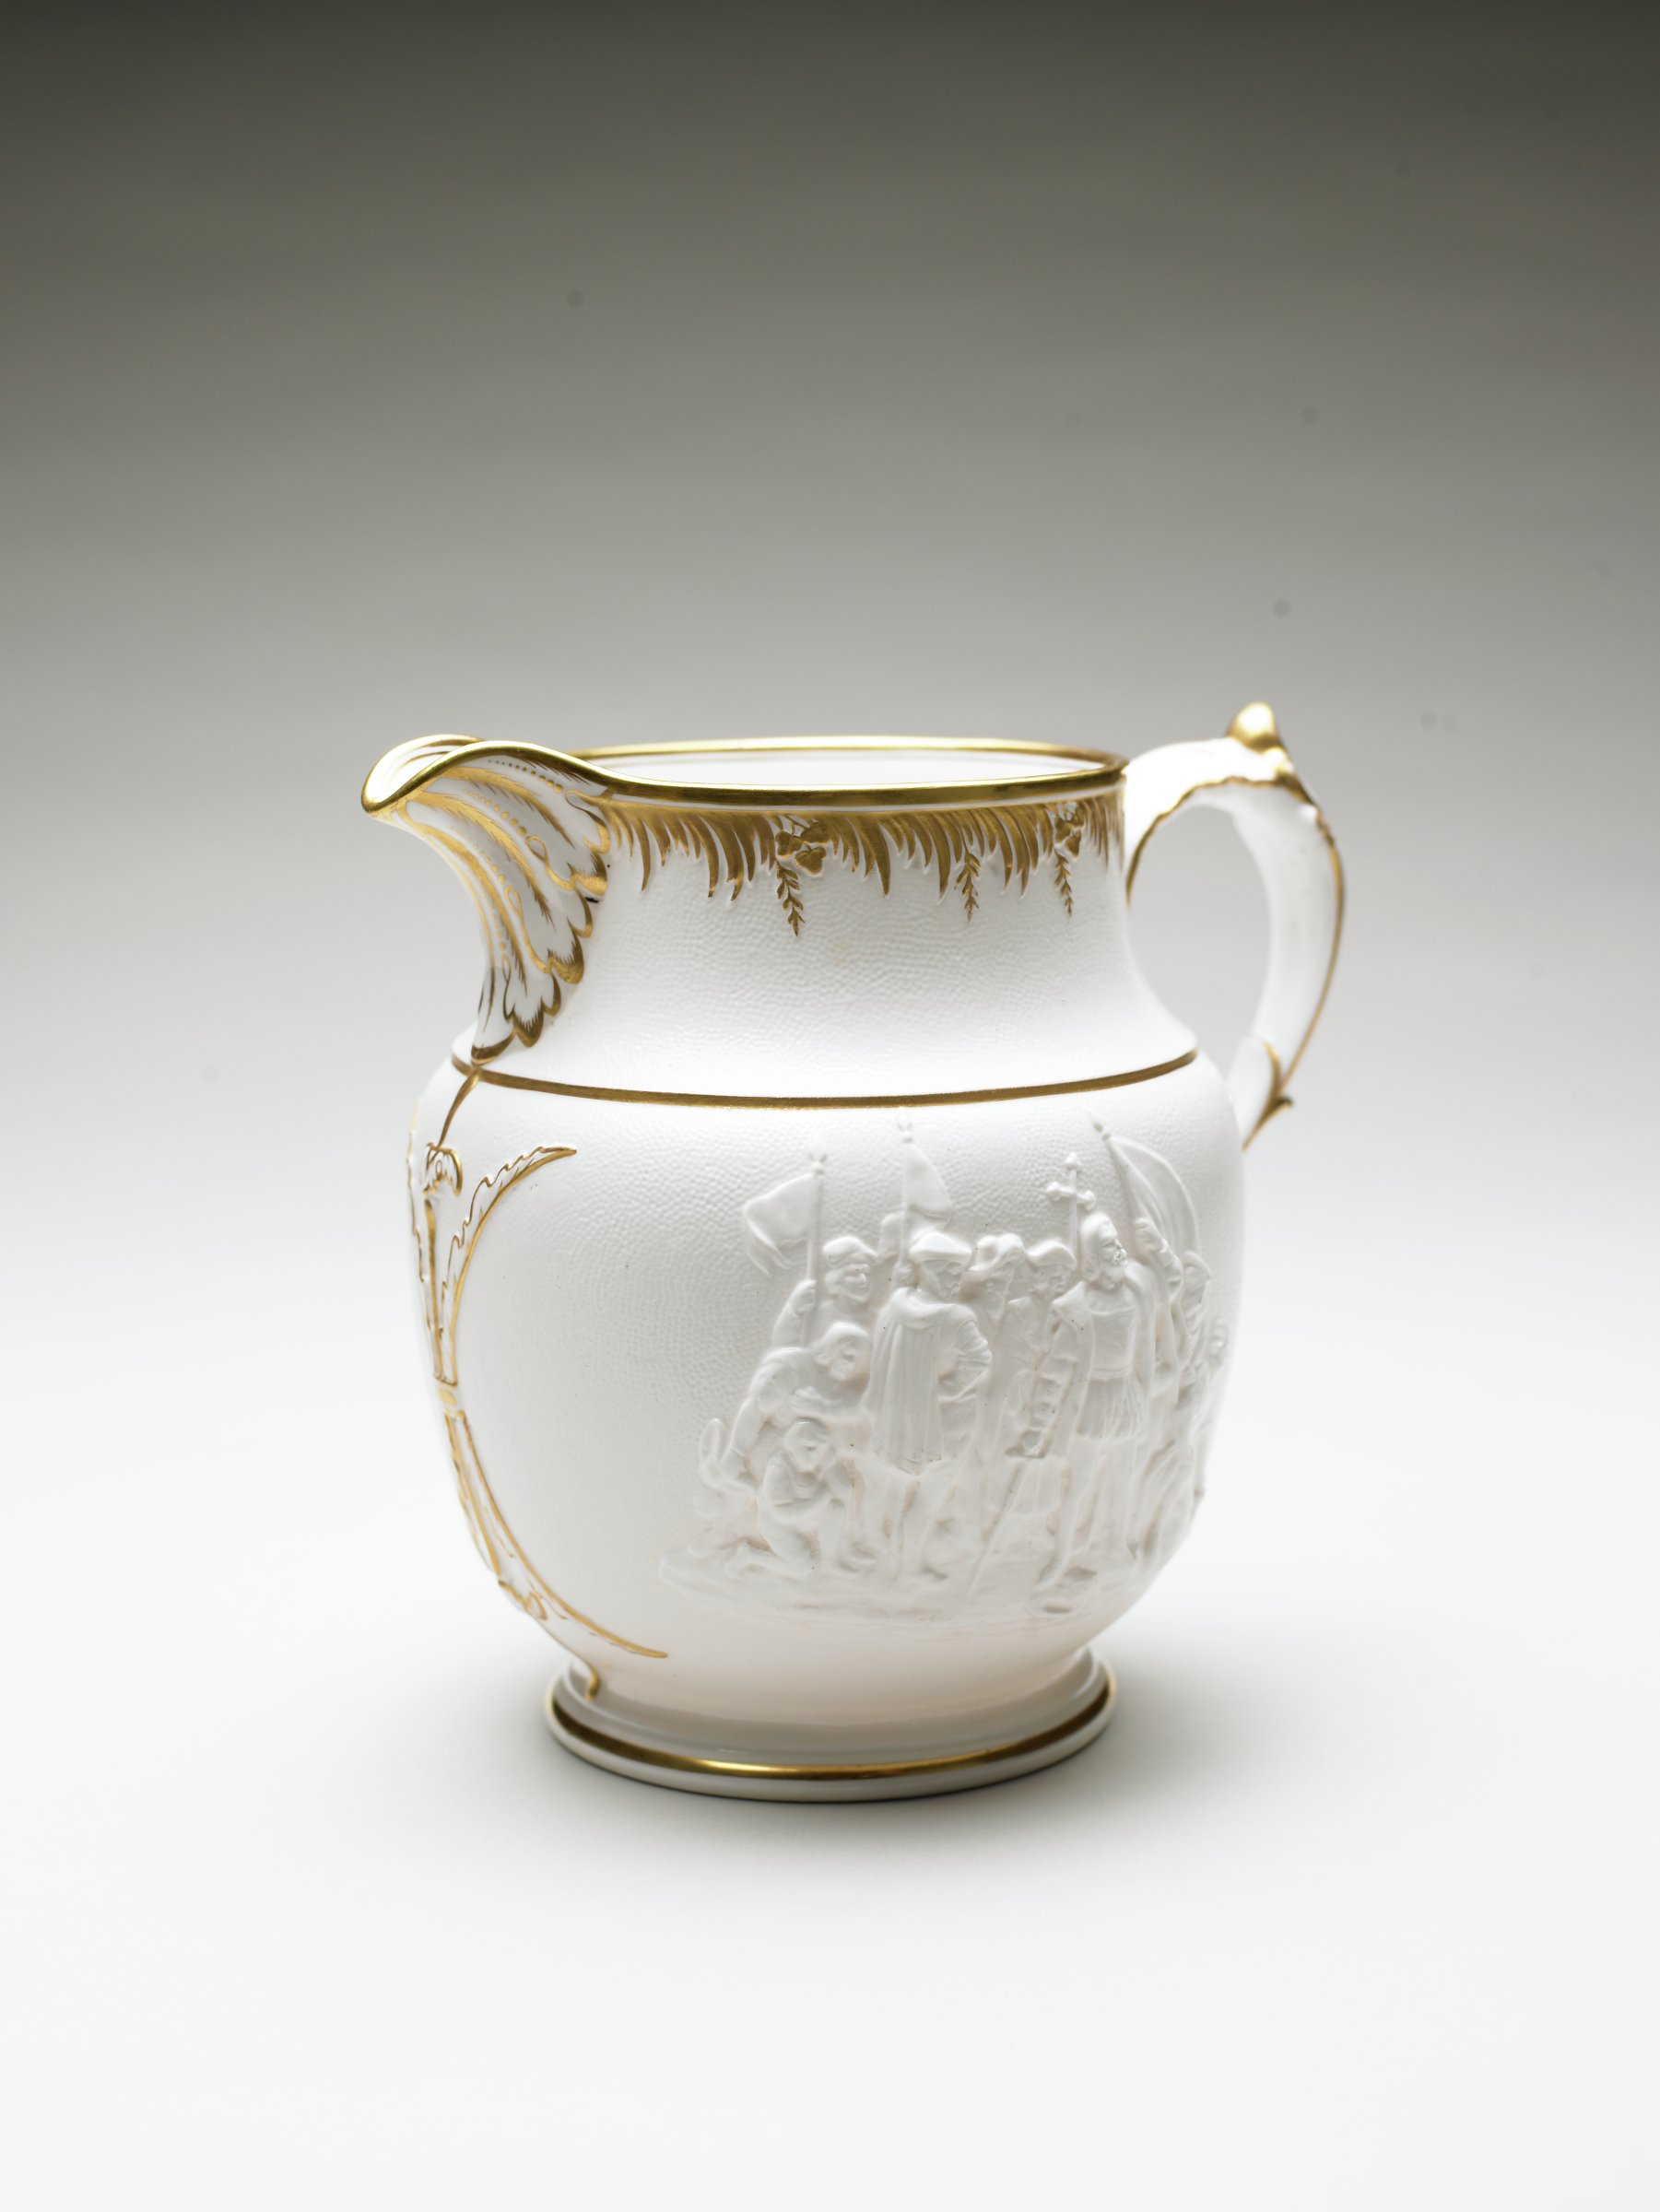 Large white stoneware pitcher of baluster form with leaf-molded spout and scrolled handle, the body with on both sides the same molded image in relief of Christopher Columbus and his crew landing in the New World, with gilt highlights around the lip, spout, handle, foot and shoulder.